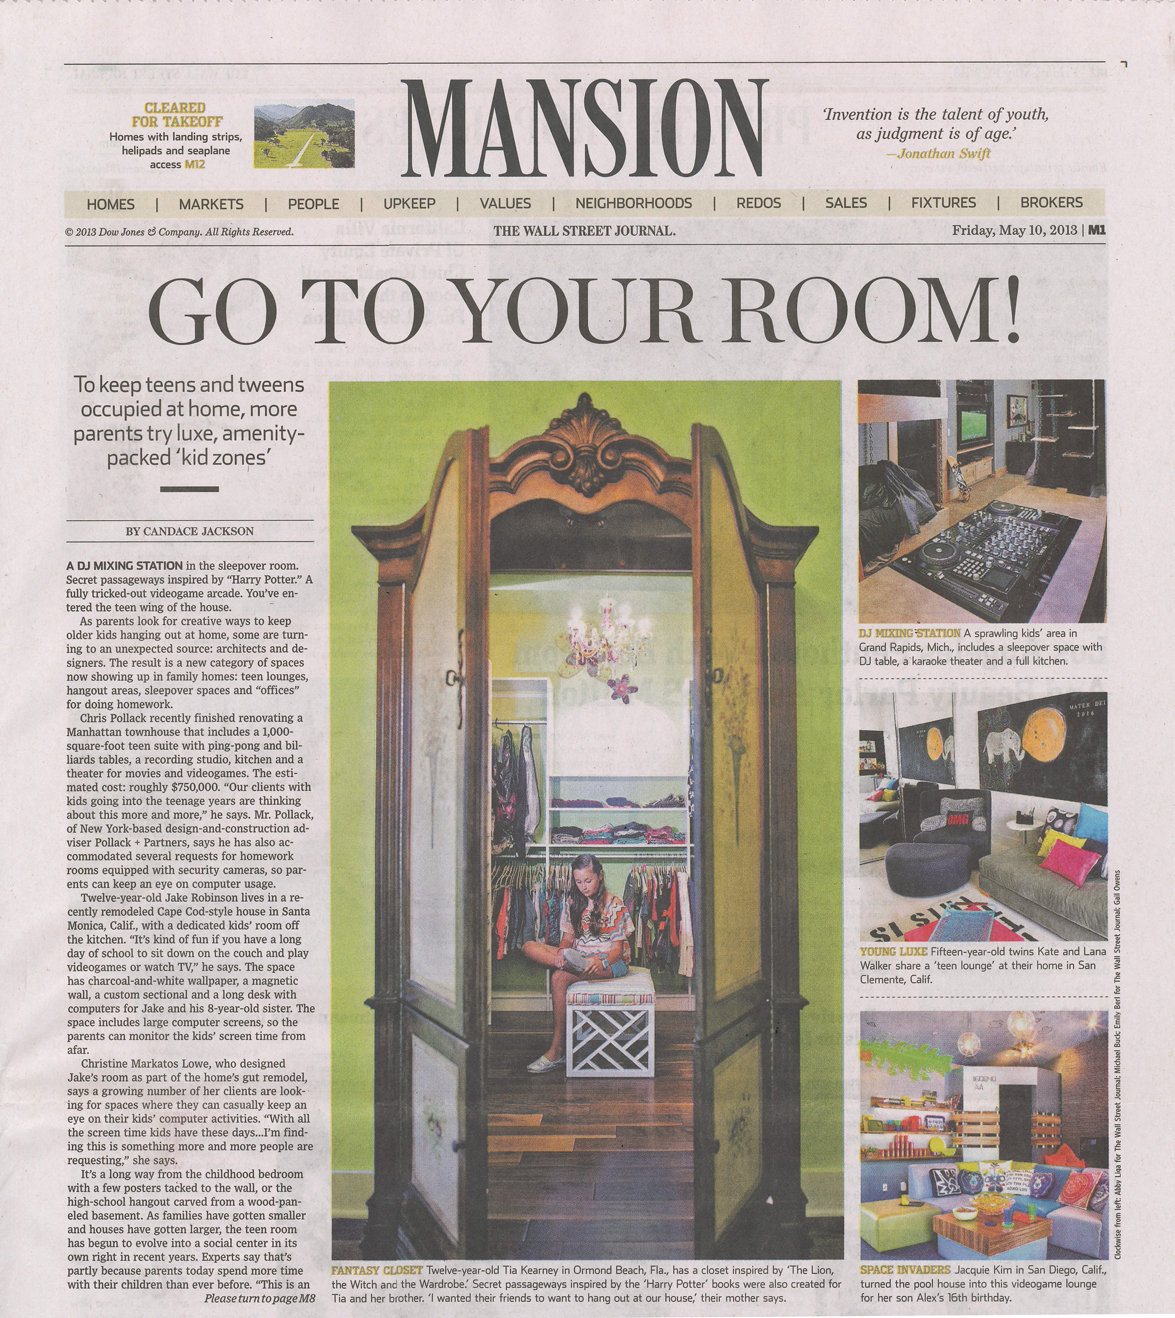 Visbeen Architects: The Wall Street Journal: Go To Your Room!